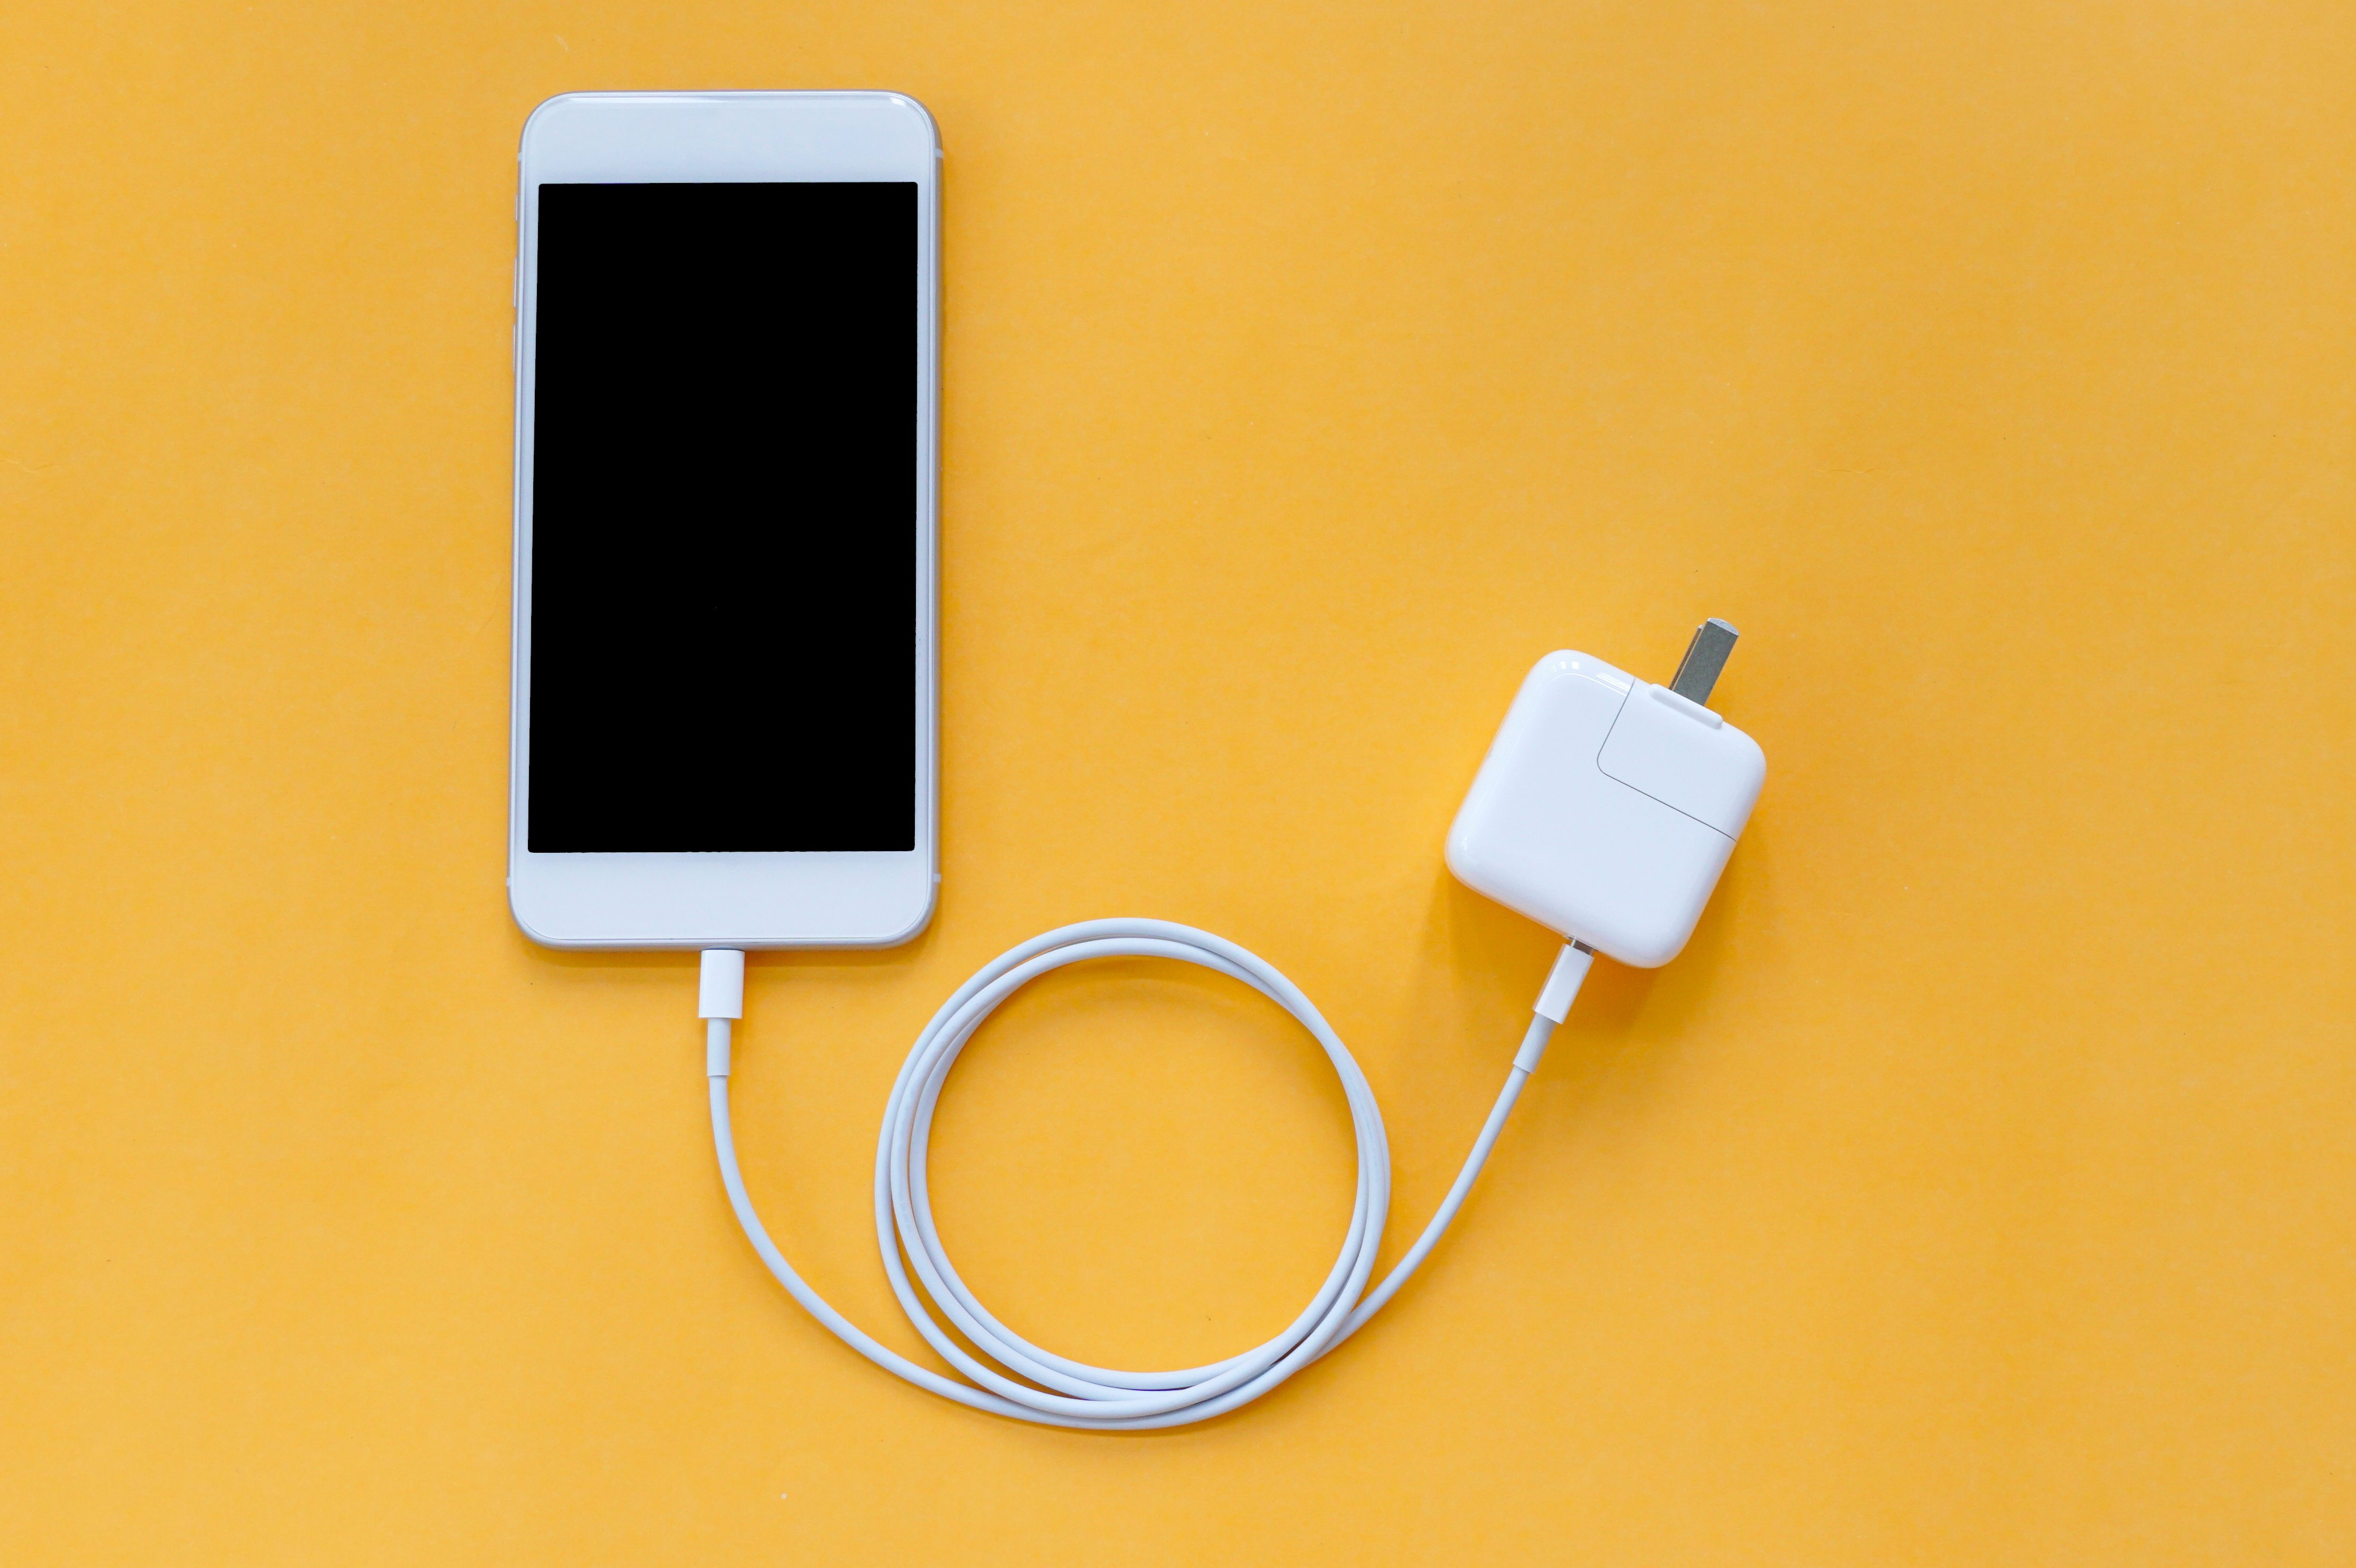 Smartphone Is Connected to Fast Charger Adapter through USB Cable on Orange Background Top View